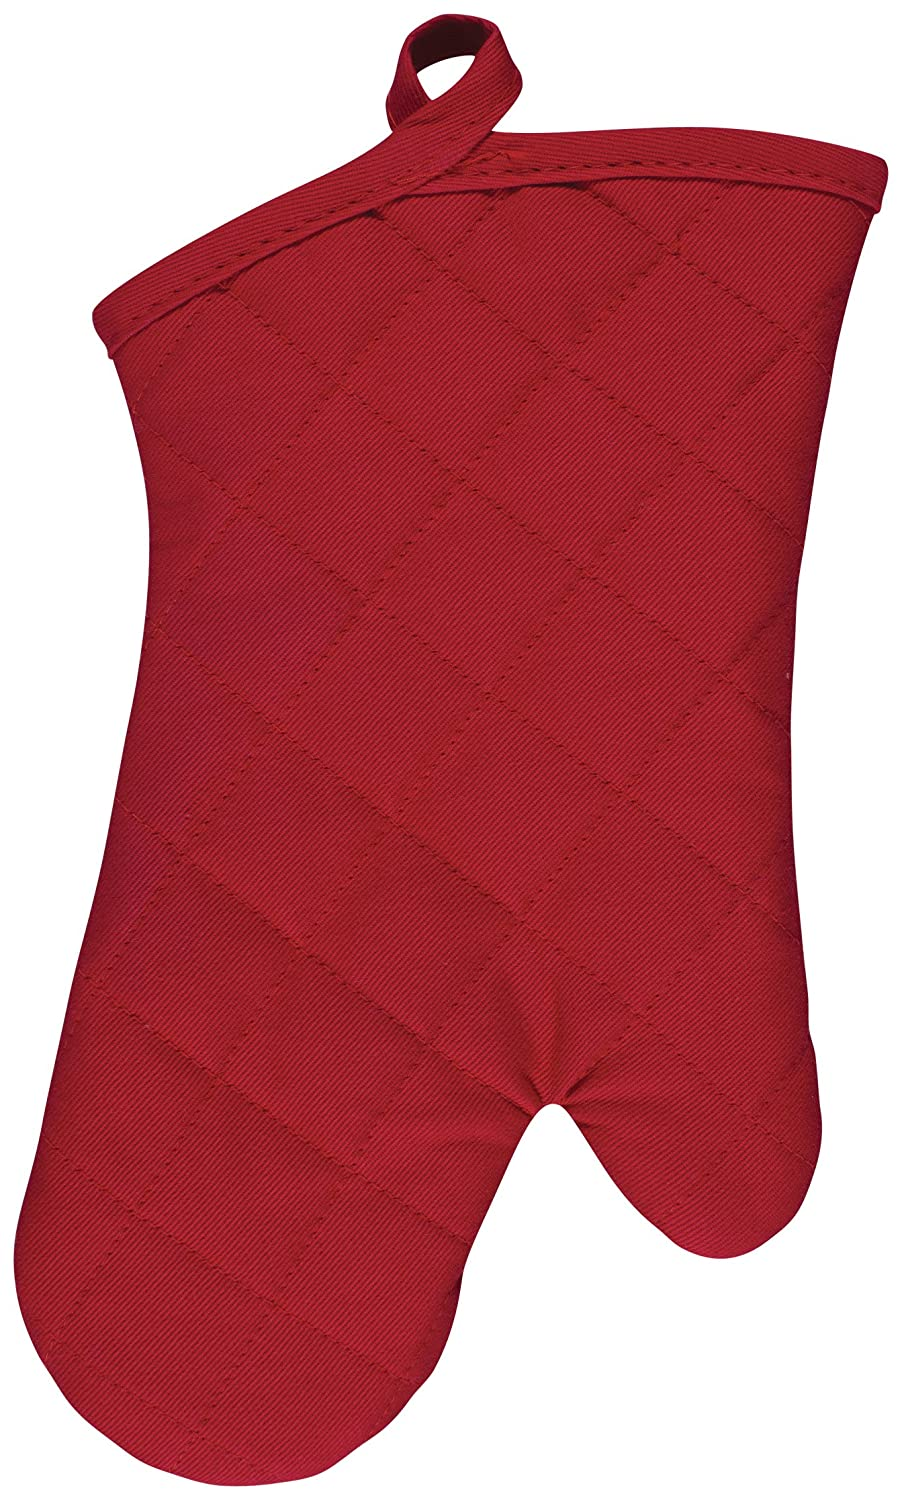 KAF Home Chefs Solid Oven Mitt, Cherry, 100% Cotton, Machine Washable, Made in USA